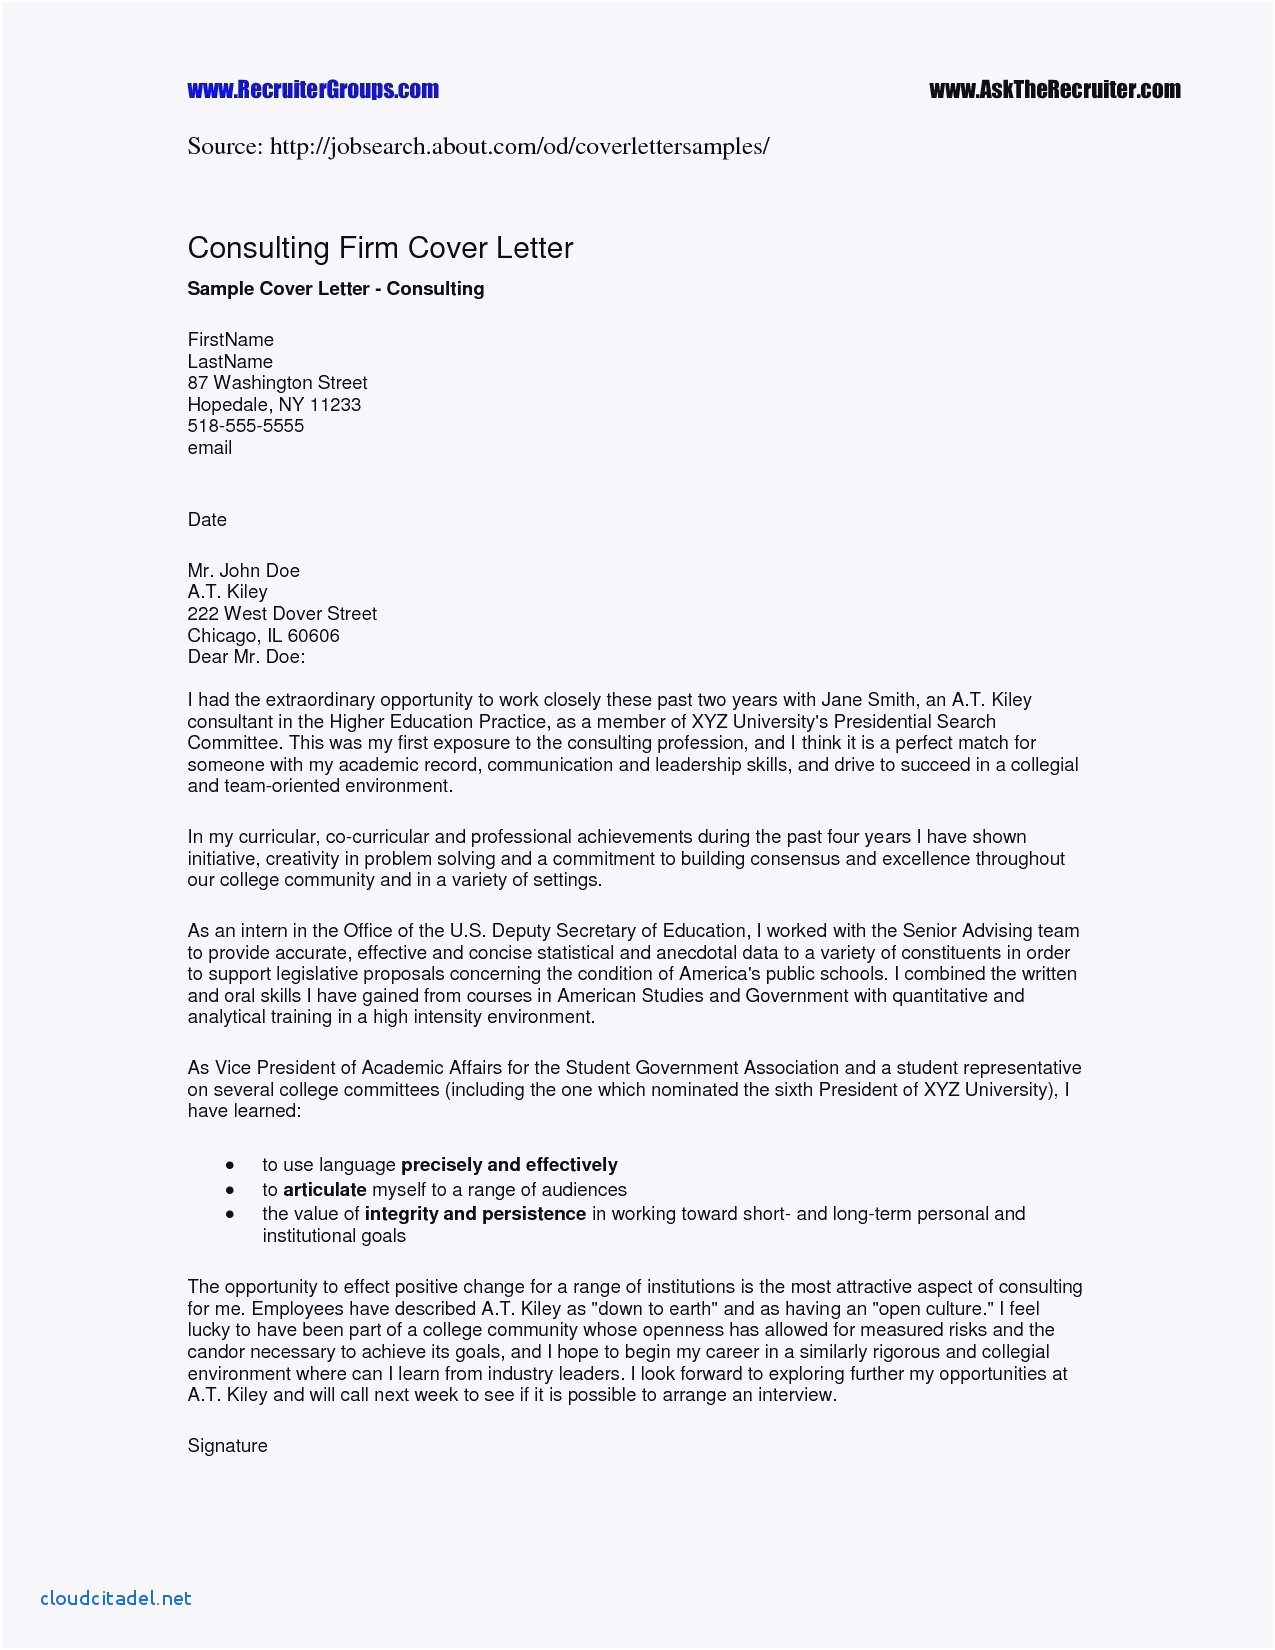 Credit Dispute Letter Template Free - Elegant Letter Sample format Doc